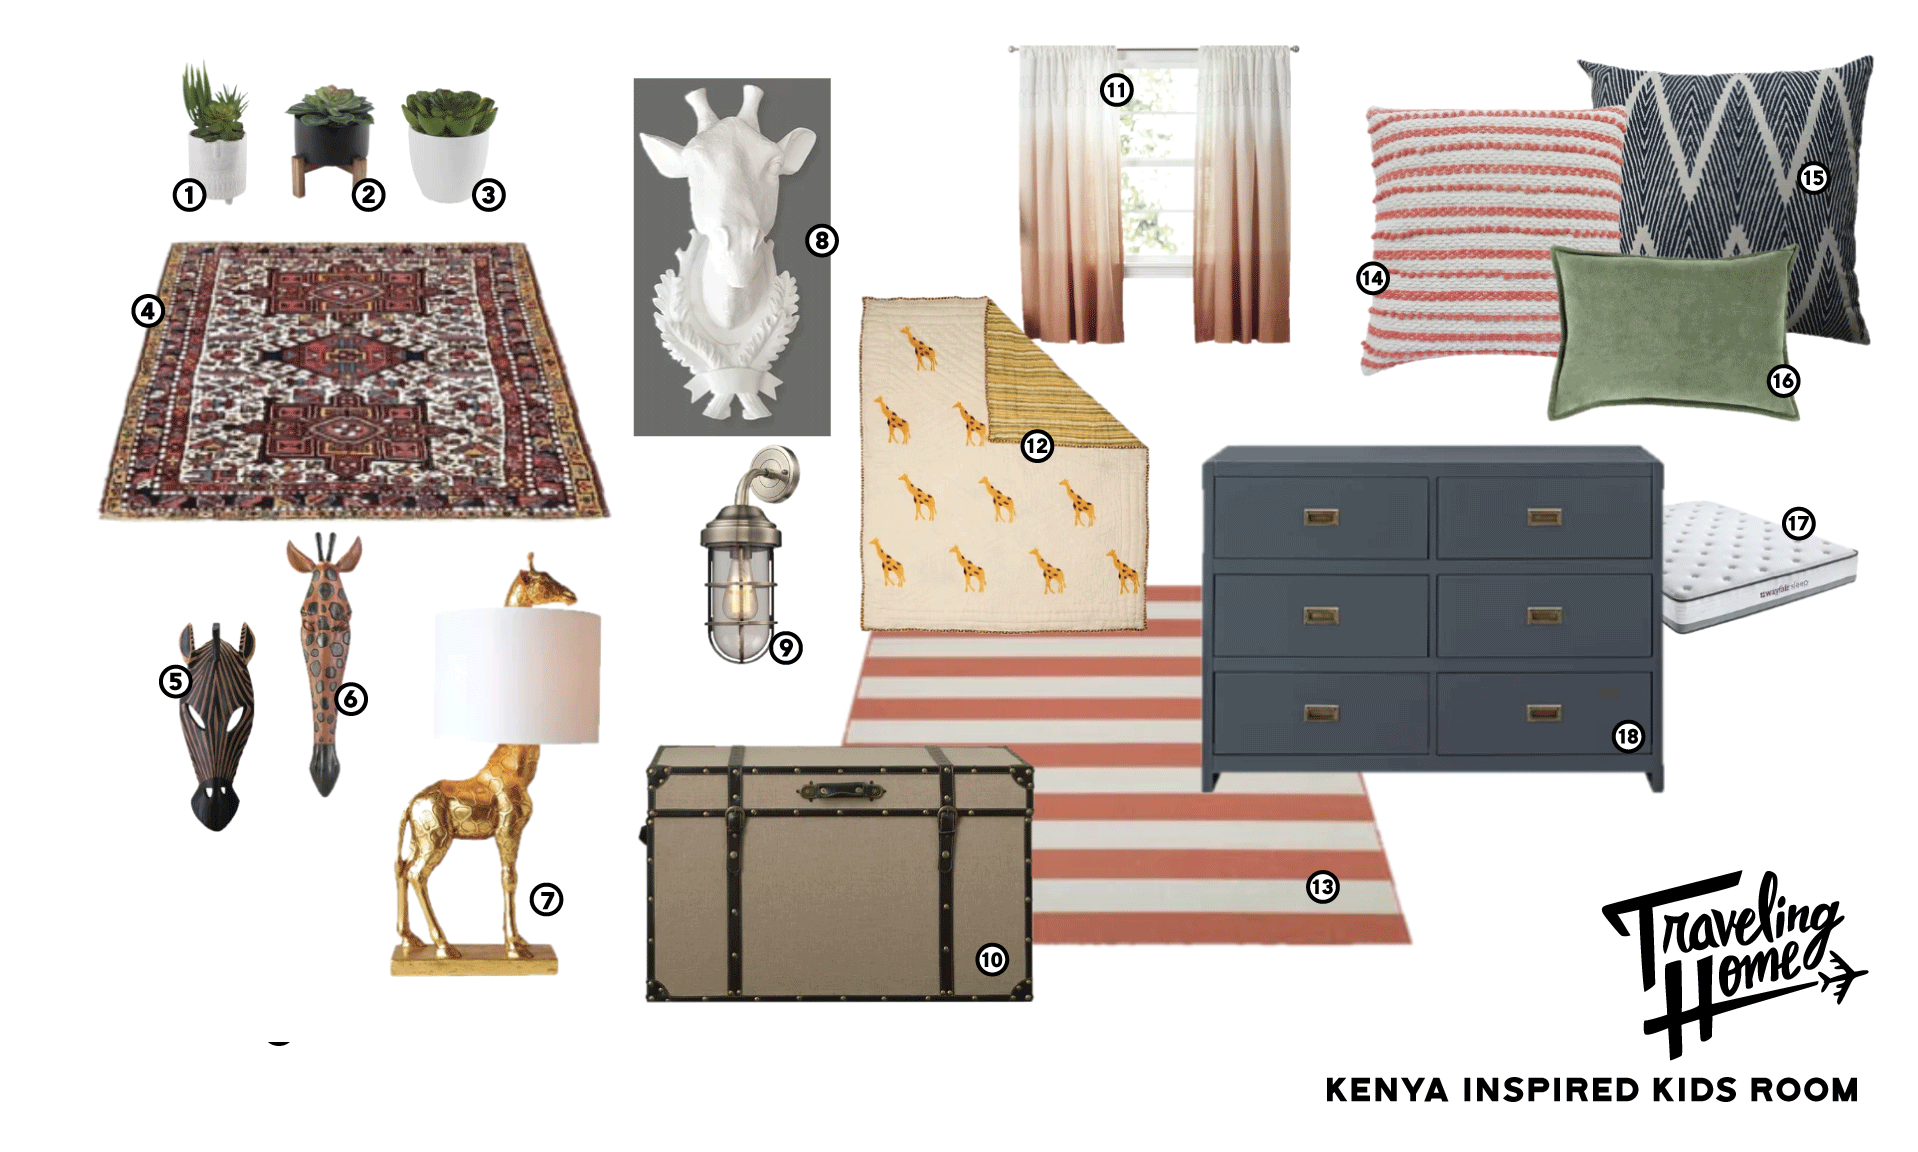 Shop Traveling Home Episode 4: Kenya Inspired Kids Room